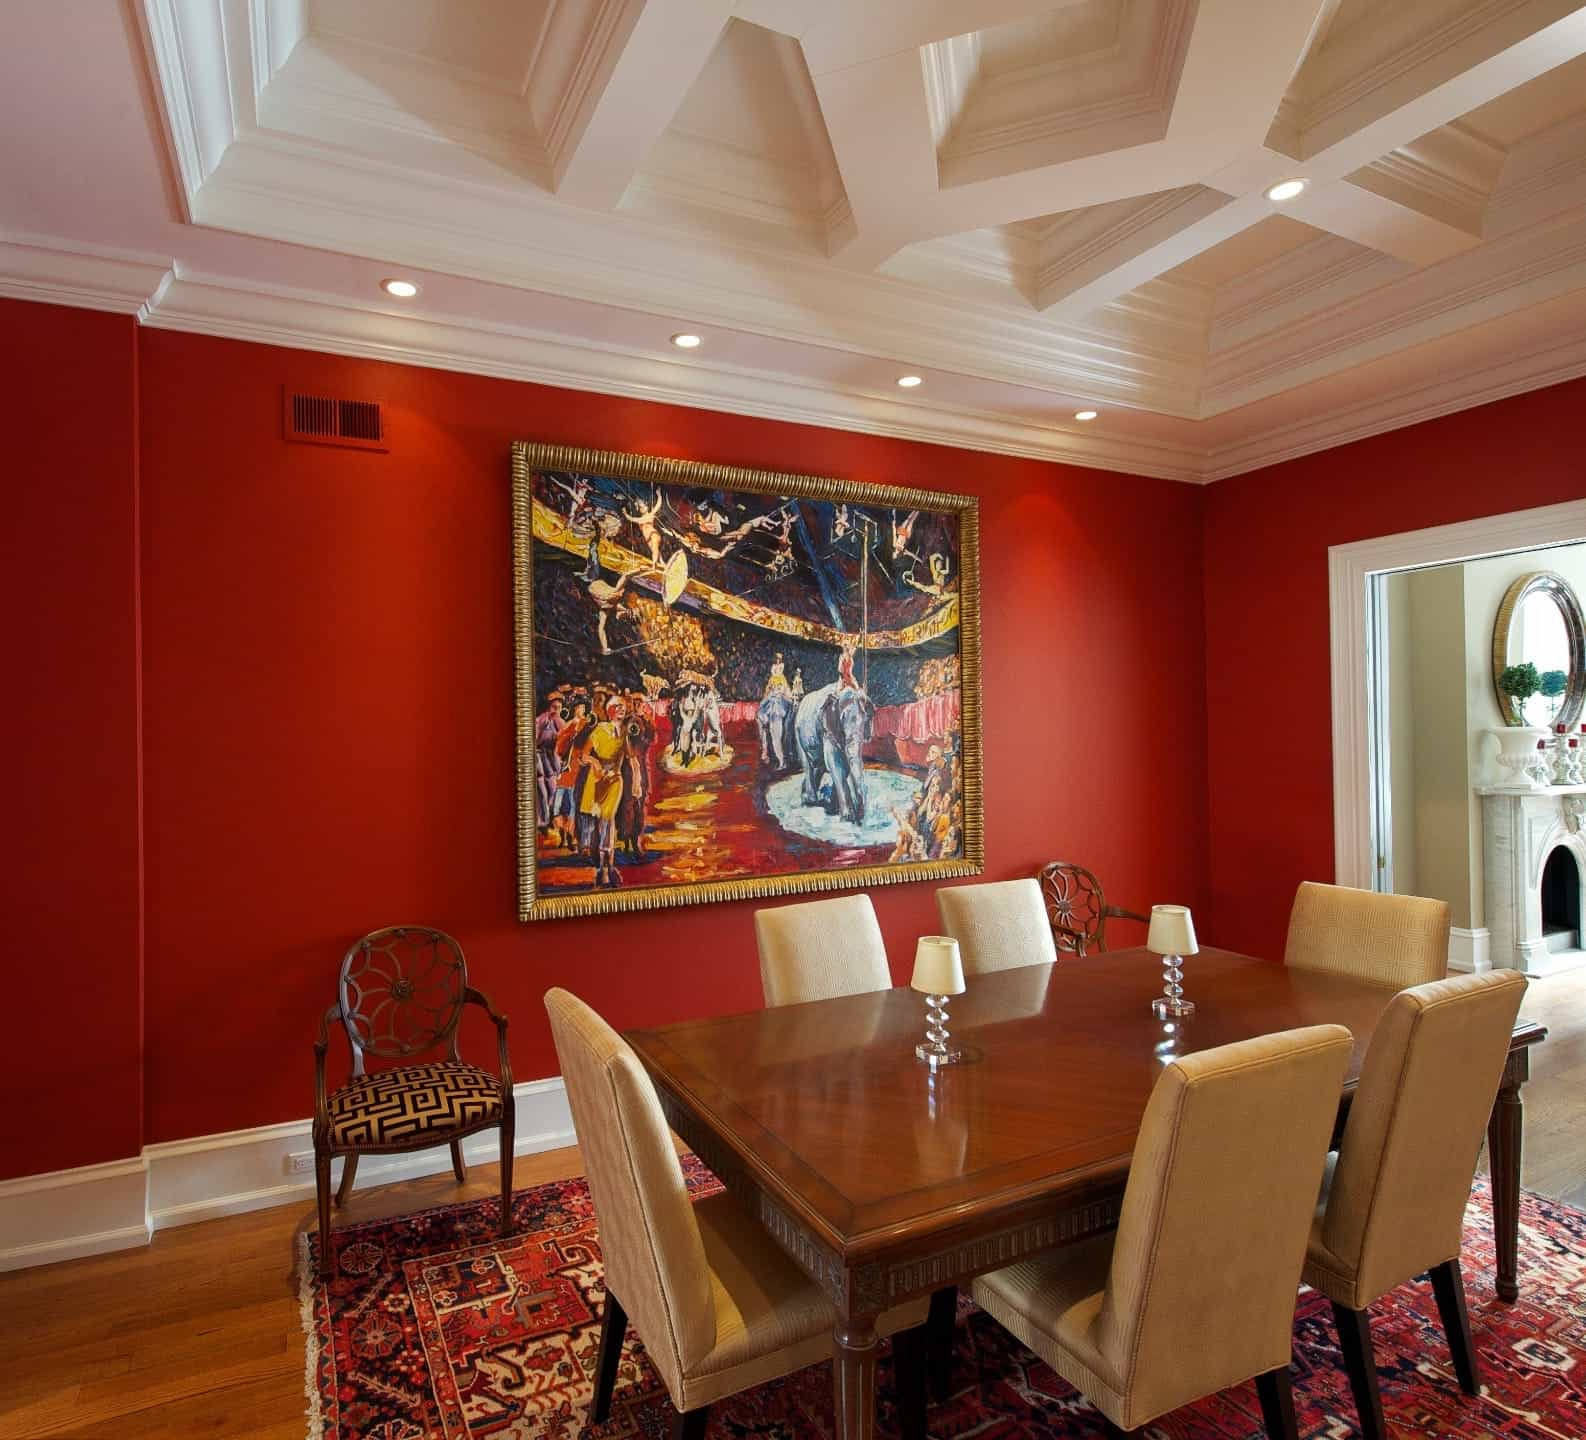 Romantic Dining Room In Bold Red Theme With Tray Ceiling And Colorful Artwork (View 7 of 21)